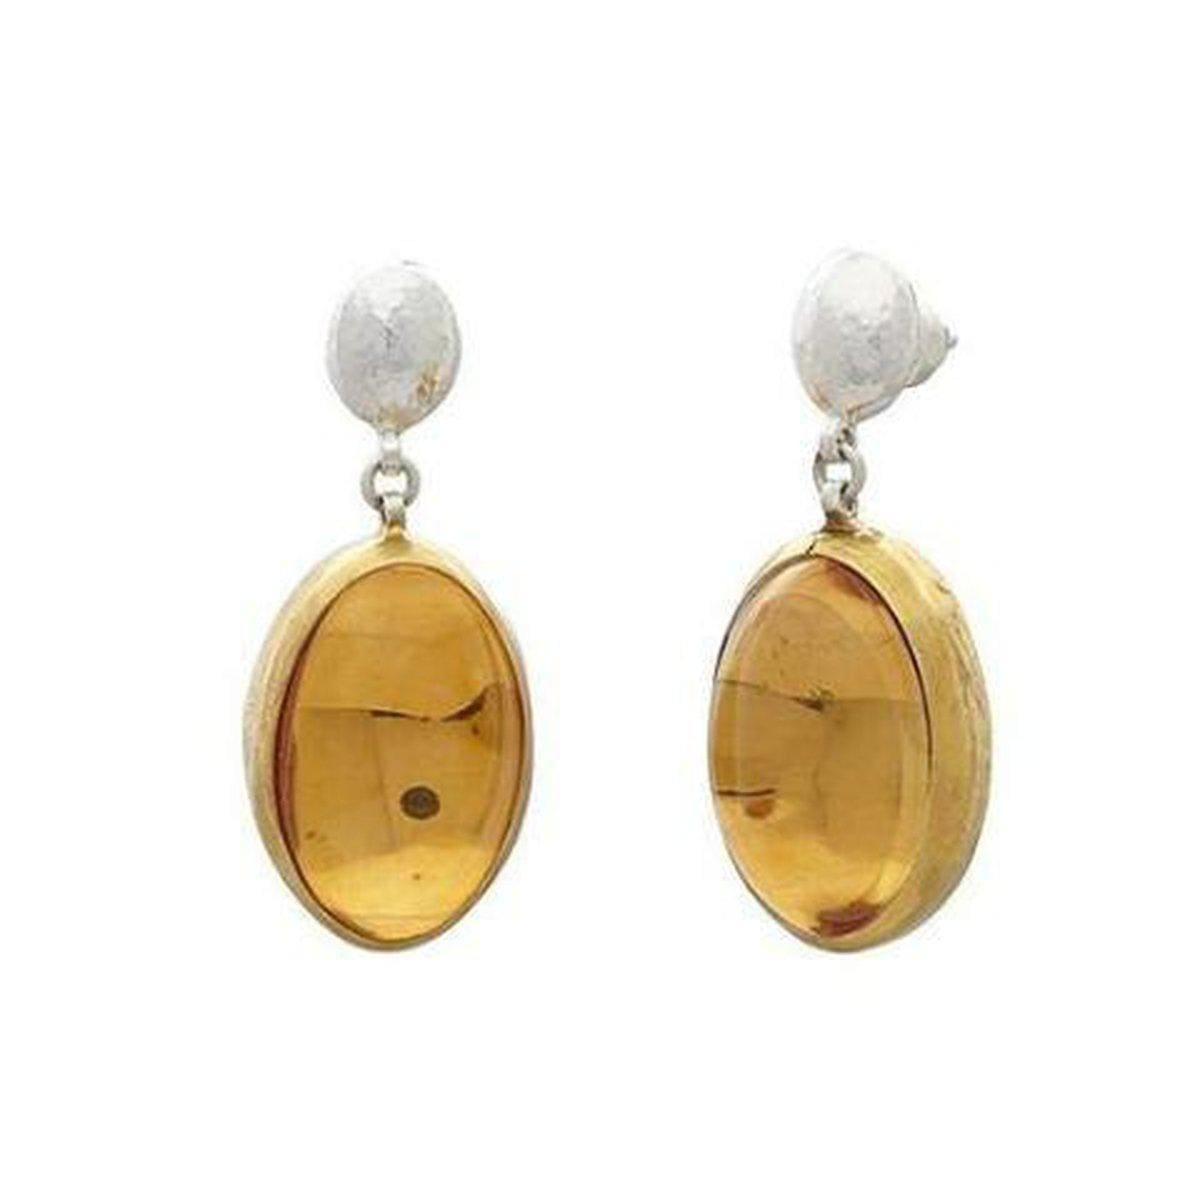 Galapagos Sterling Silver Citrine Earrings - SE-U25995-GC-GURHAN-Renee Taylor Gallery